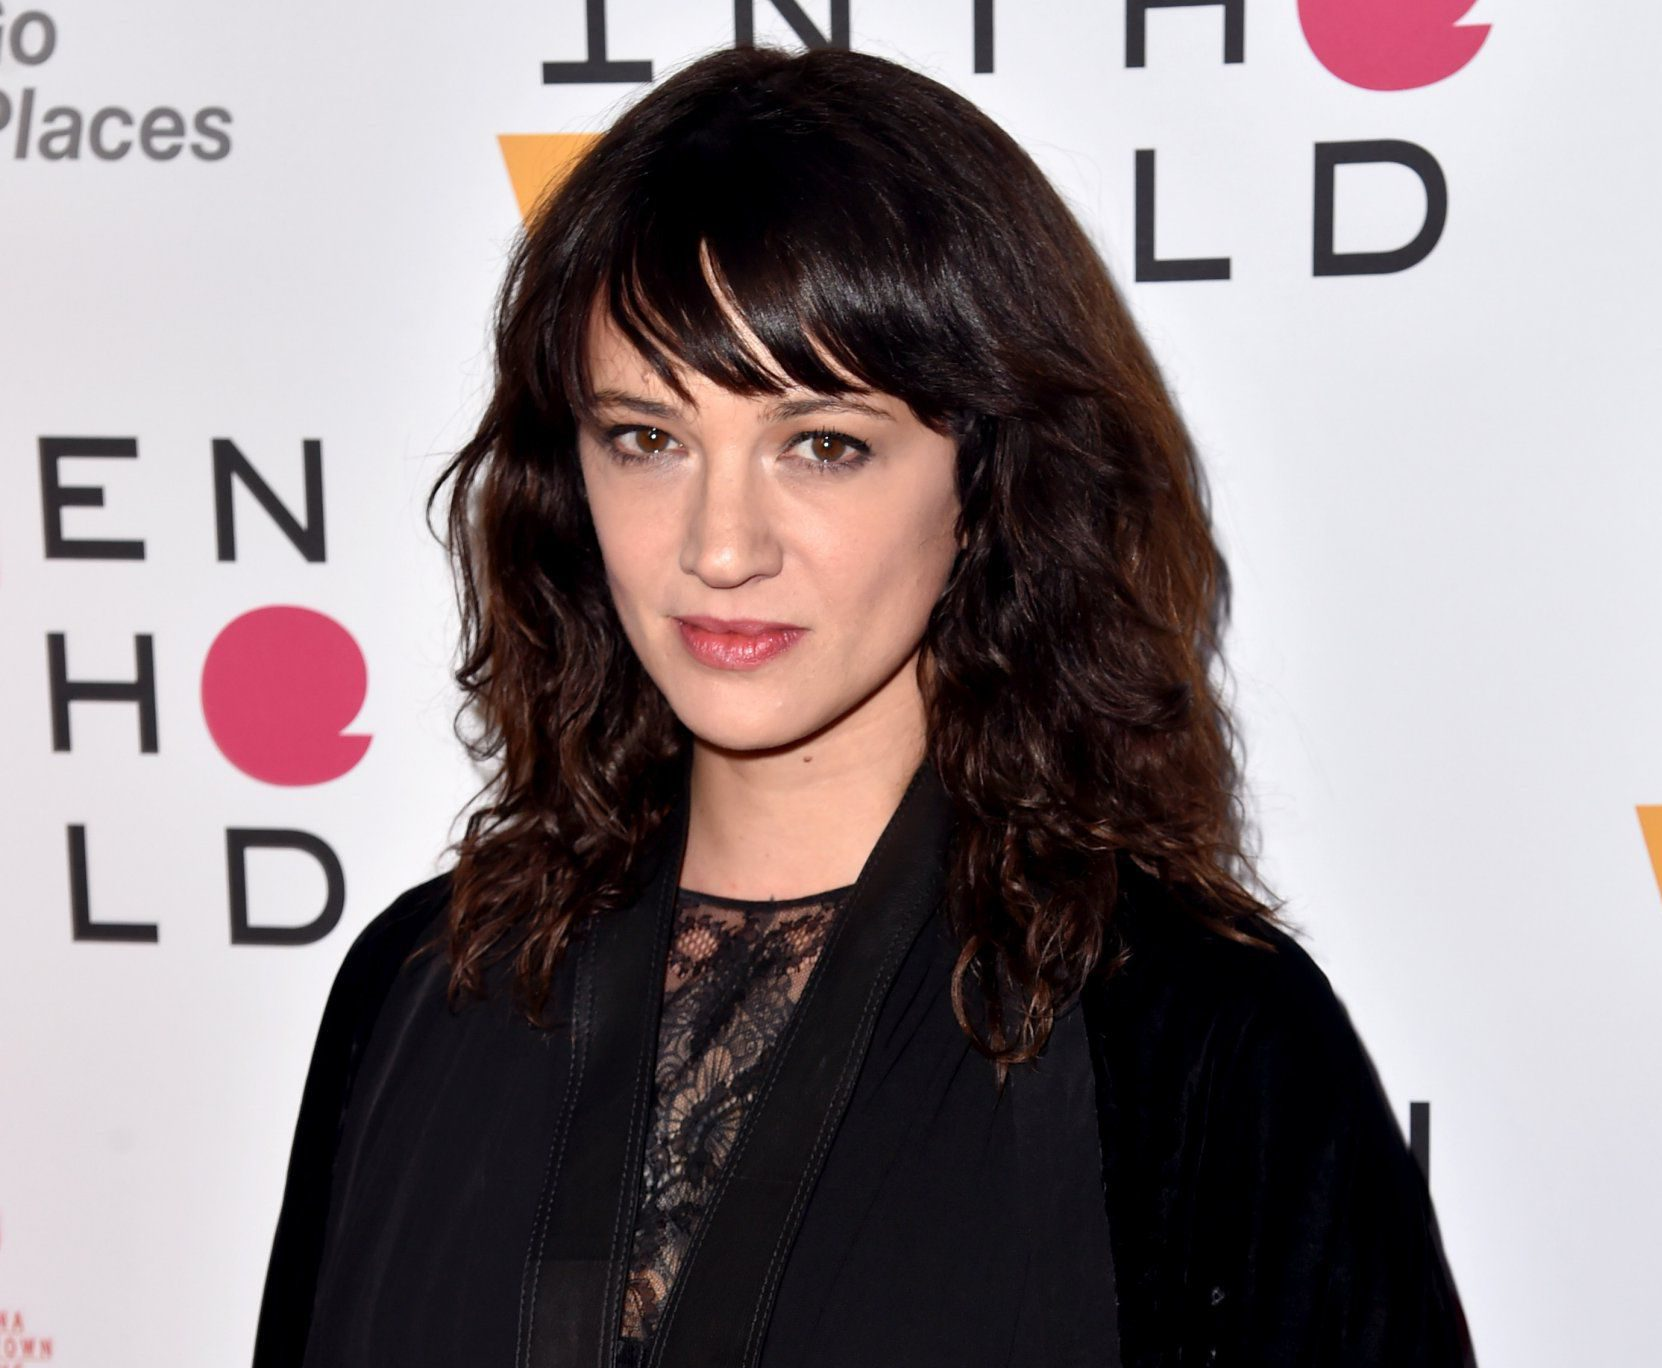 Mandatory Credit: Photo by Stephen Lovekin/REX/Shutterstock (9626741bm) Asia Argento 9th Annual Women in the World Summit, Arrivals, New York, USA - 12 Apr 2018